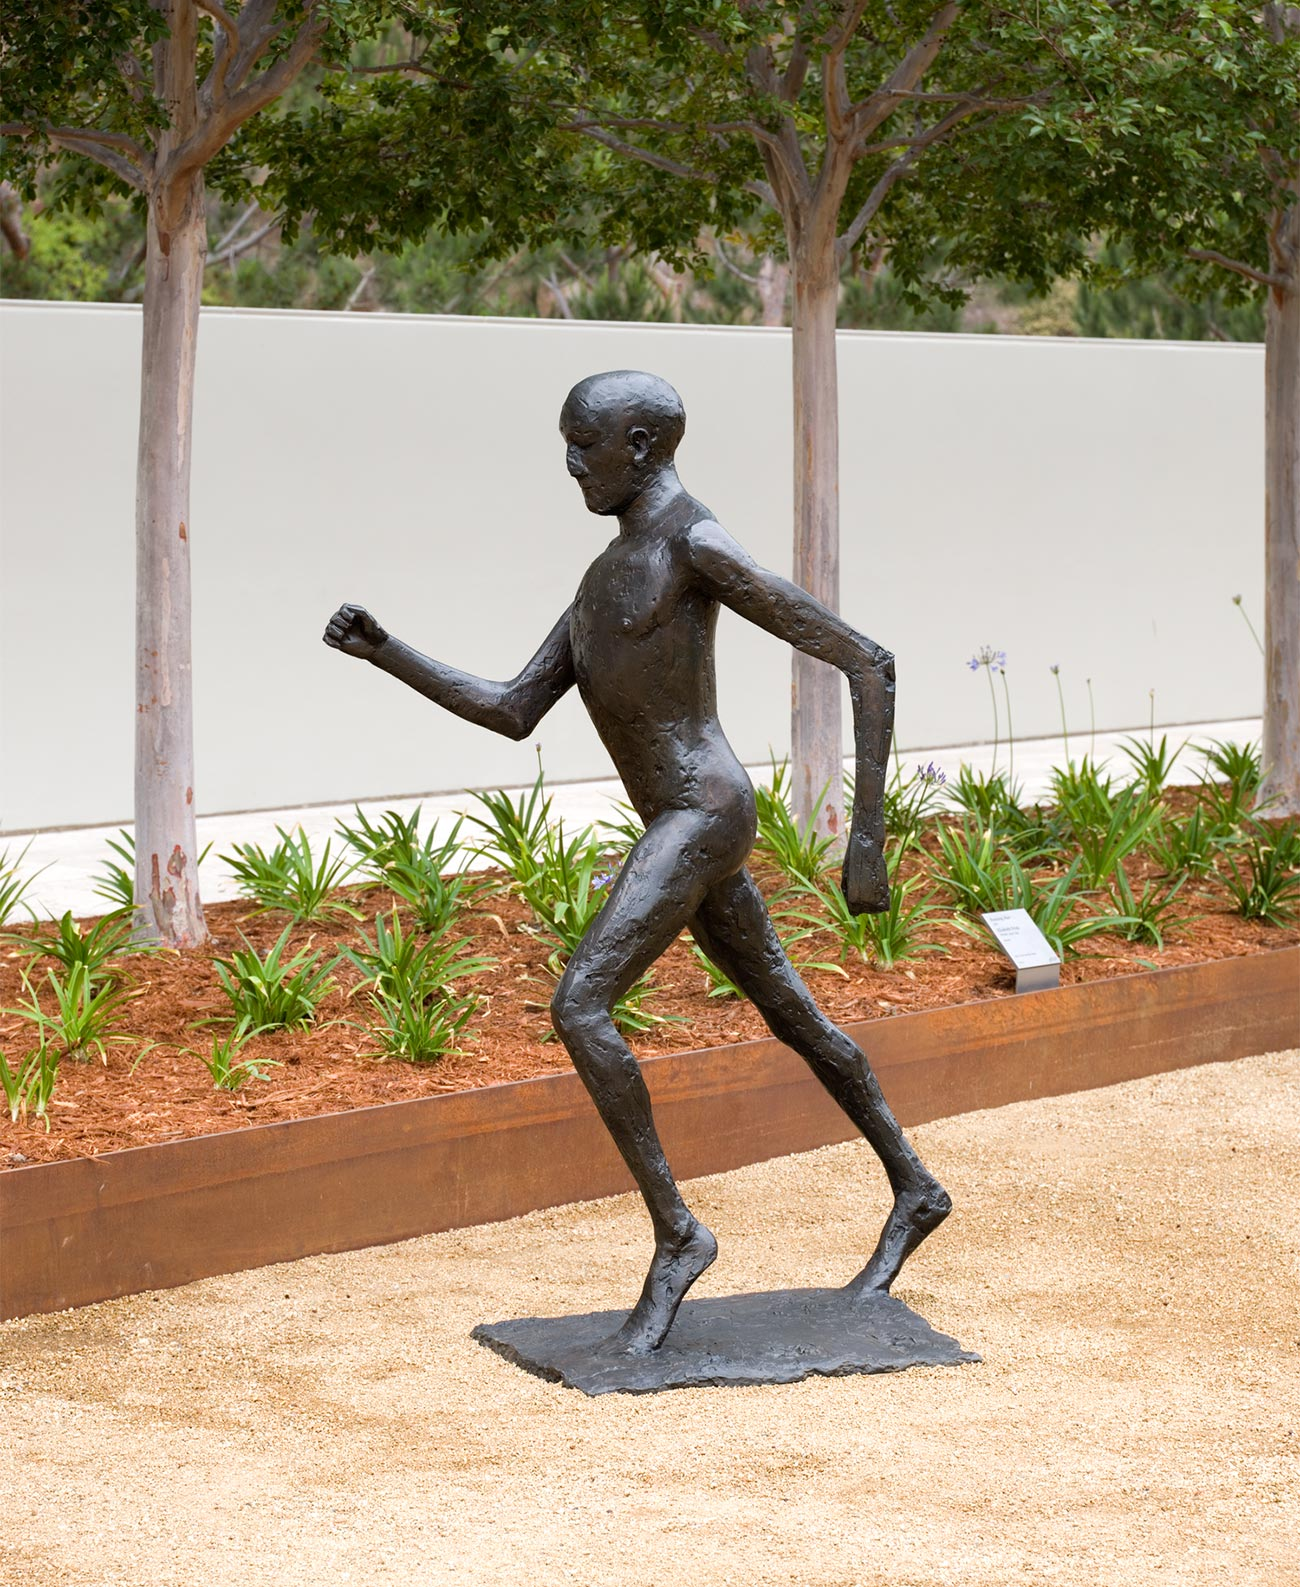 Side view of a nearly life-size bronze statue of a man in mid-stride